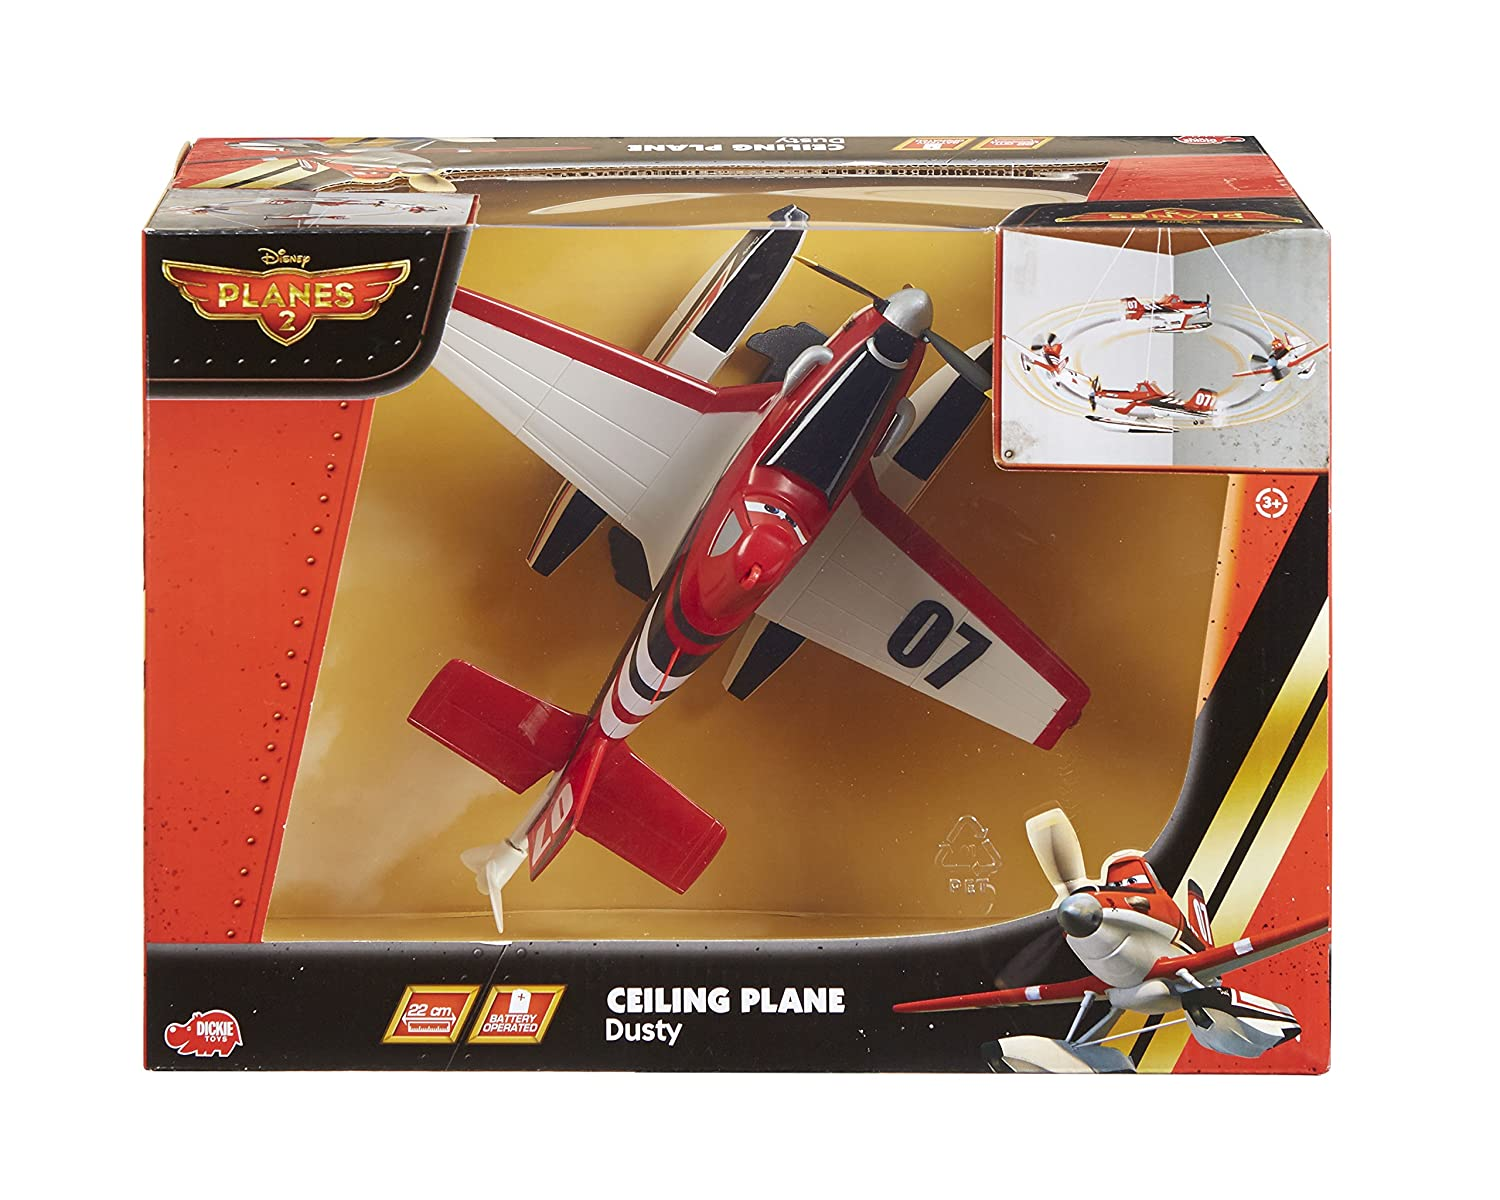 Amazon.com: Planes Dusty Ceiling Plane: Toys & Games